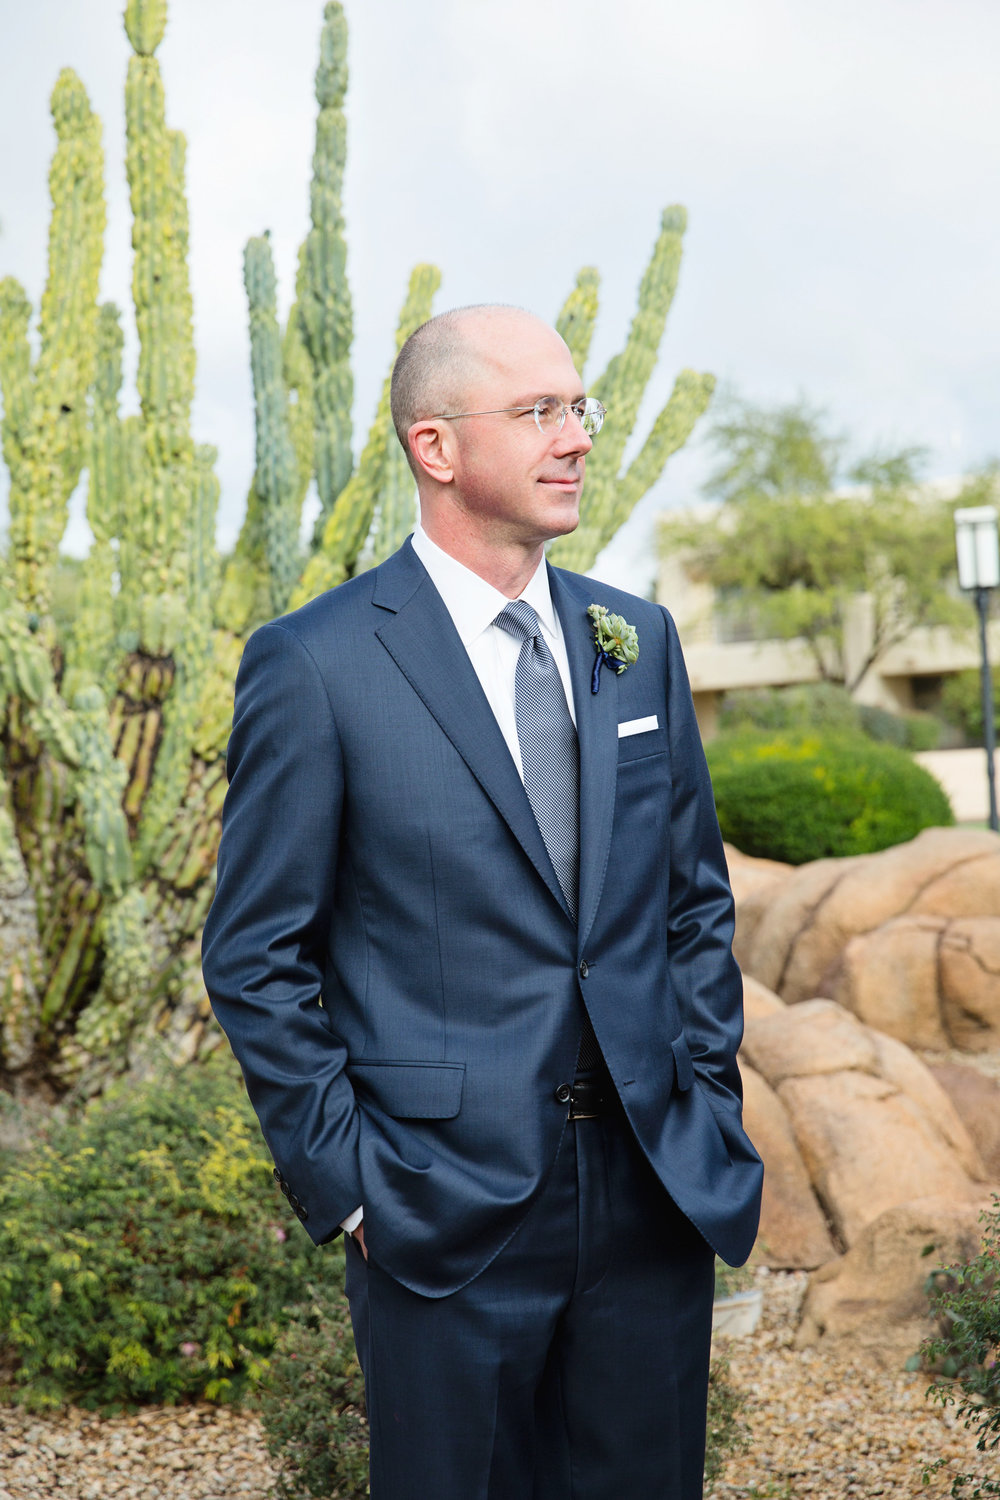 Arizona wedding, Camelback Mountain wedding, pink flowers, wedding details, groom, groom moment, first look